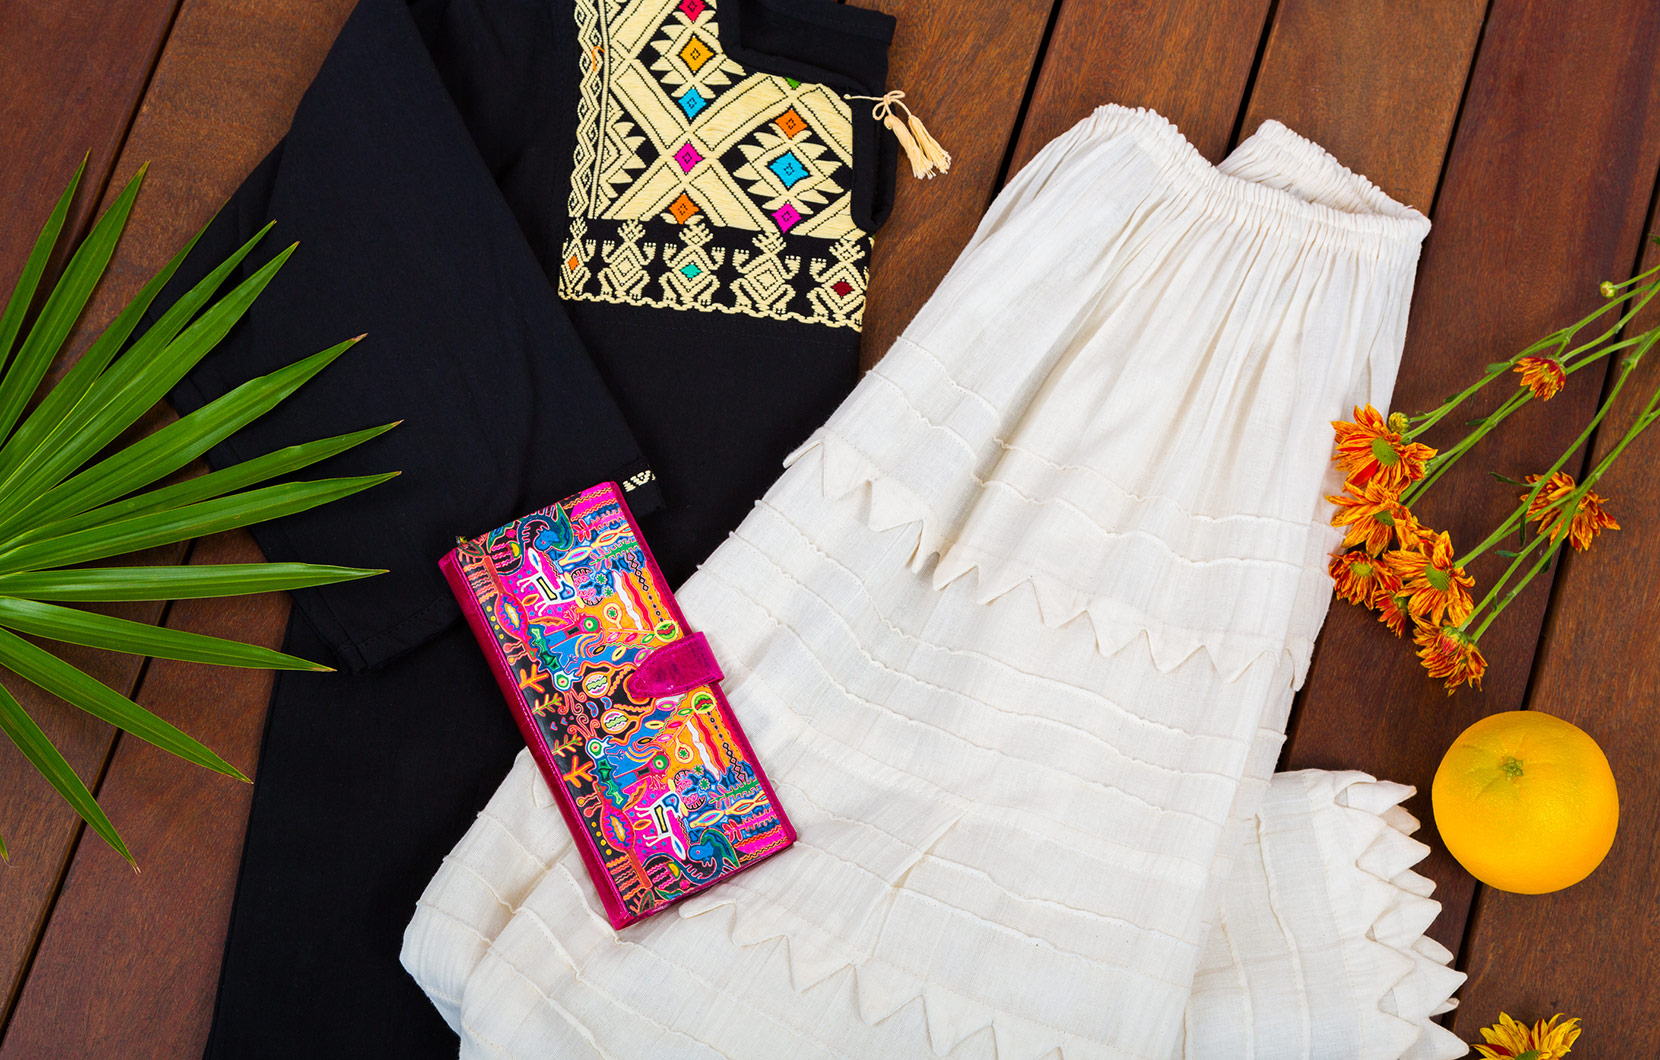 A Mexican-style purse, blouse, and skirt from La Plaza.